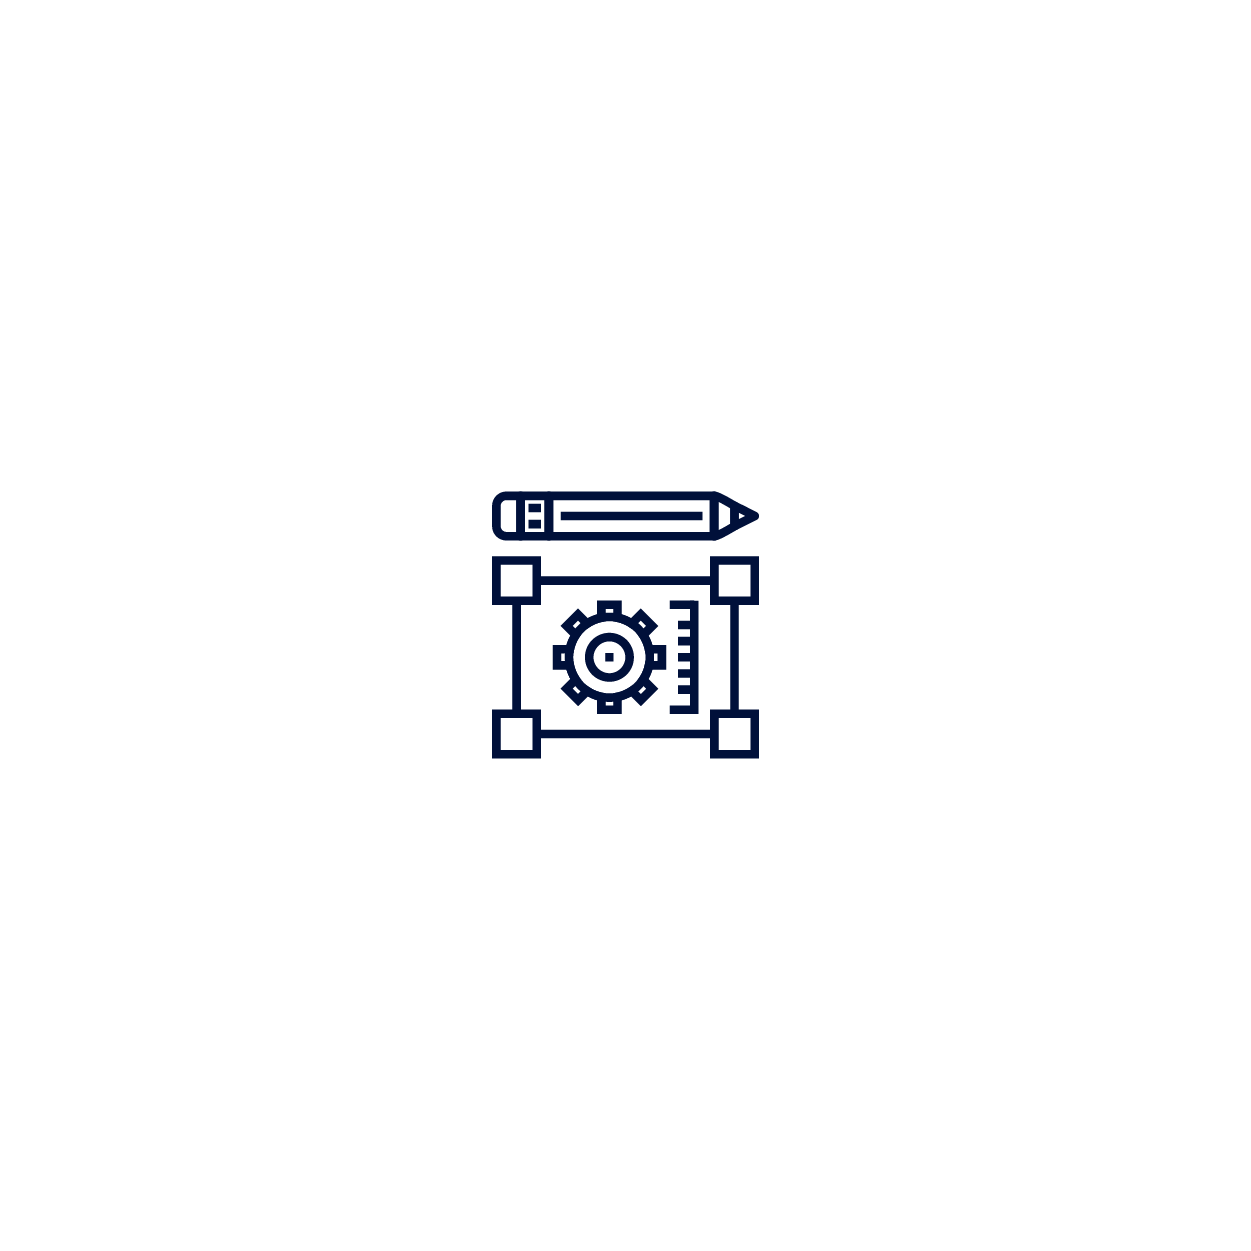 Graphic Design Line Icons-03.png